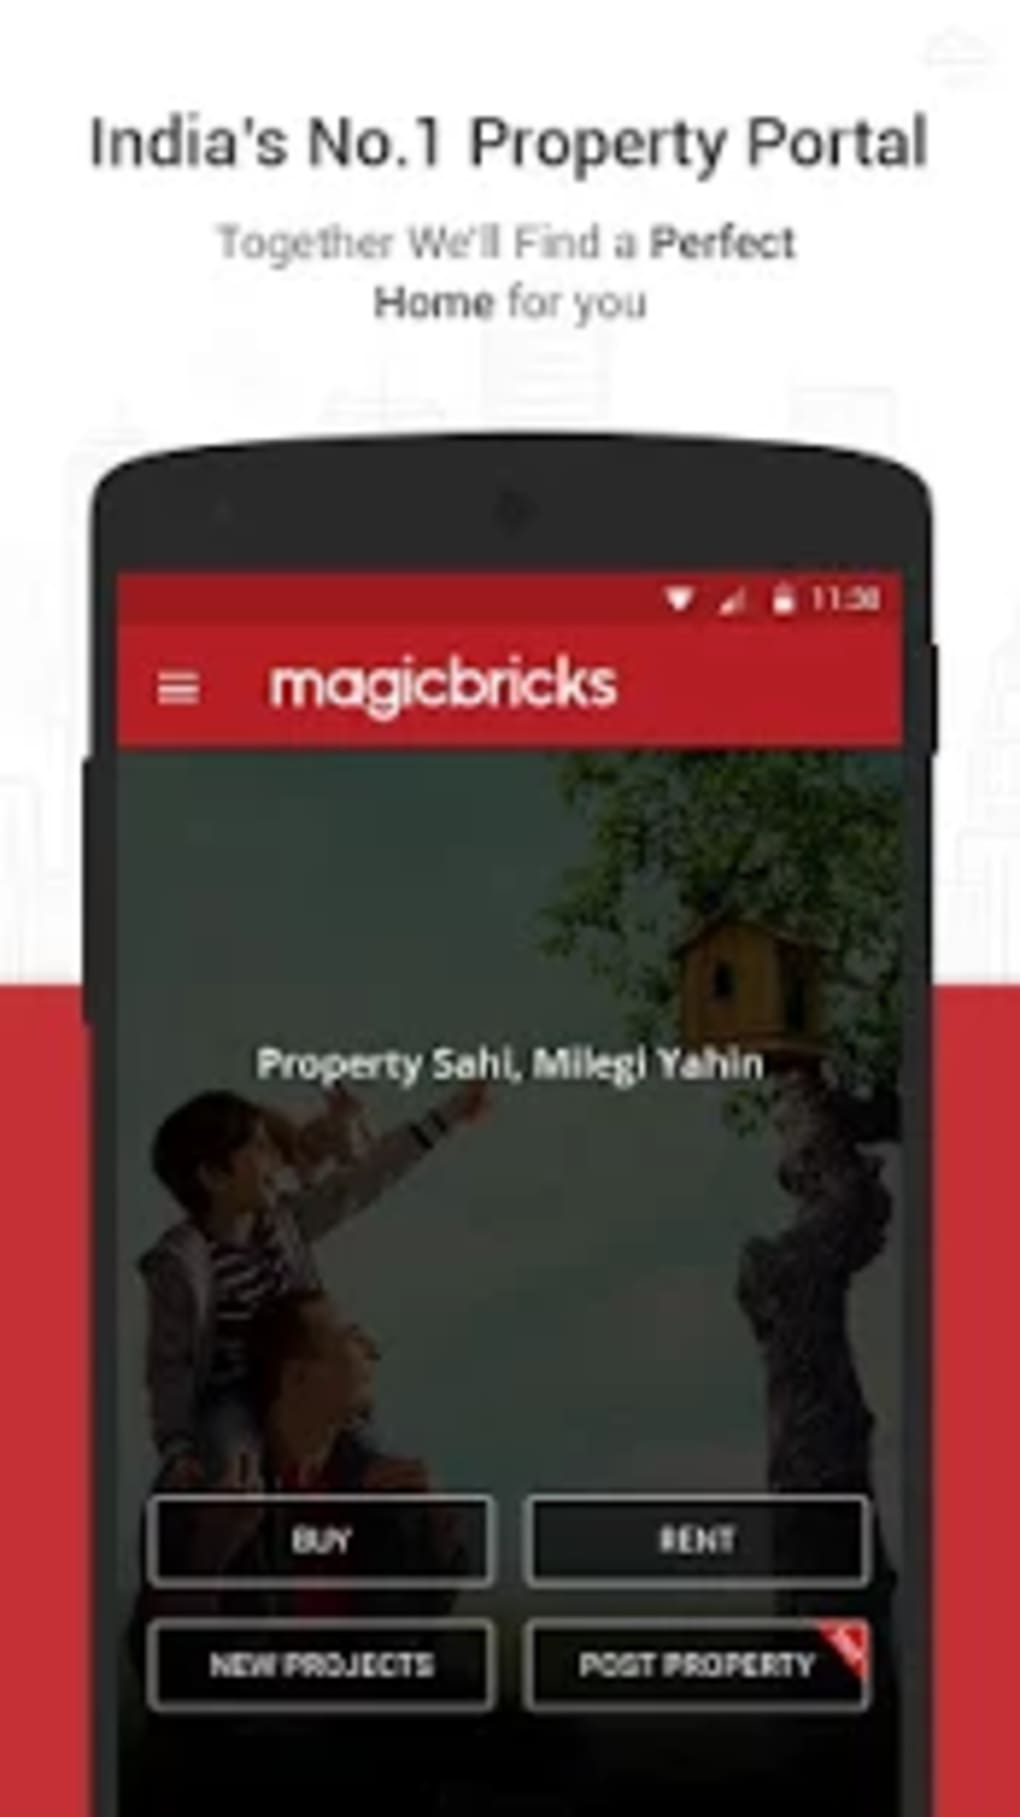 MagicBricks Property Search for Android - Download